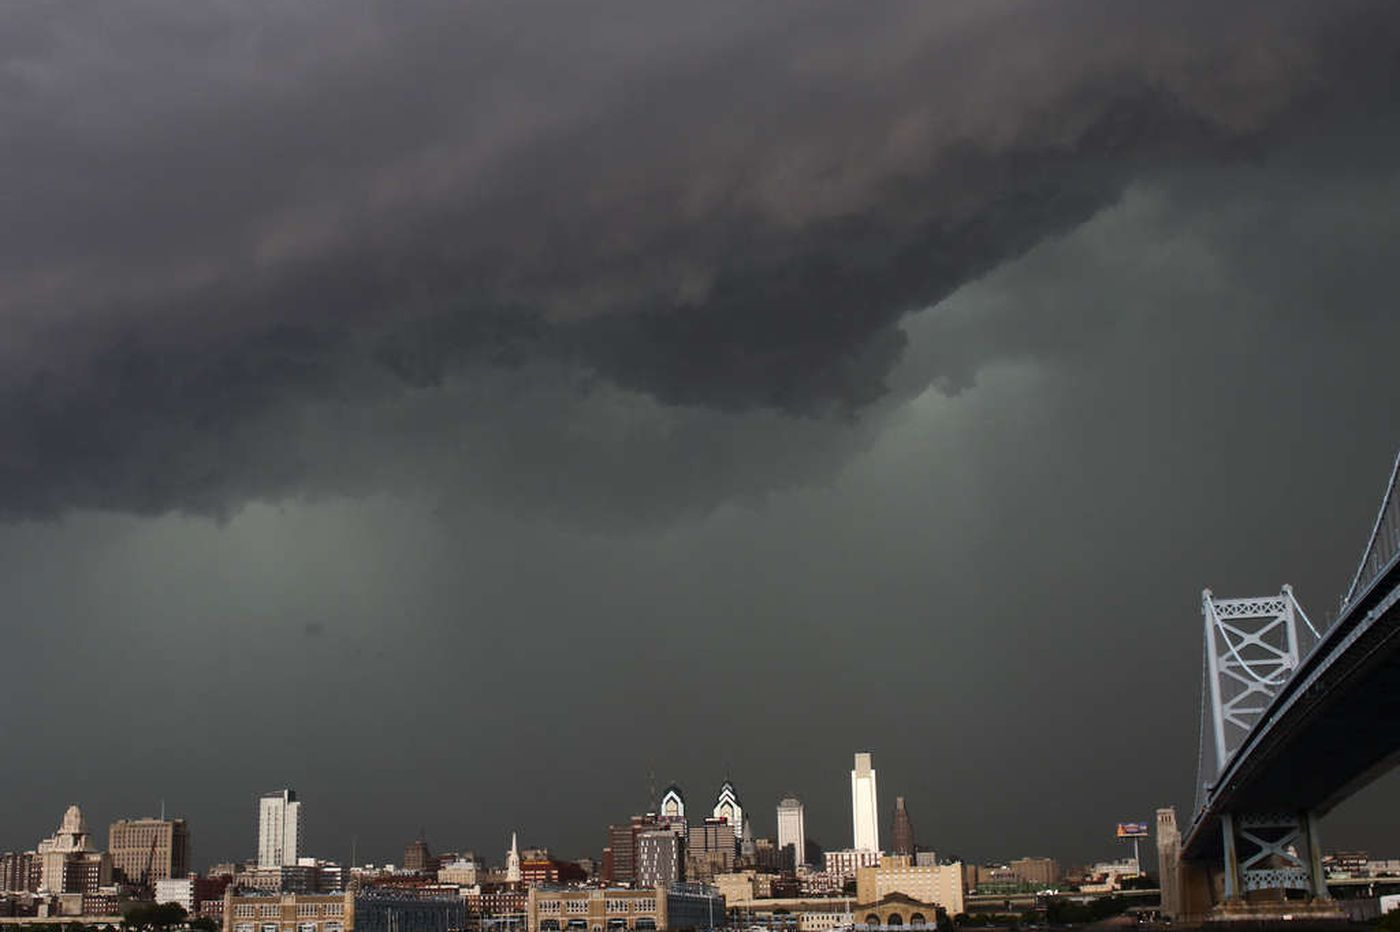 Memorial Day weekend bummer: Severe thunderstorms likely to hit Philly region by evening